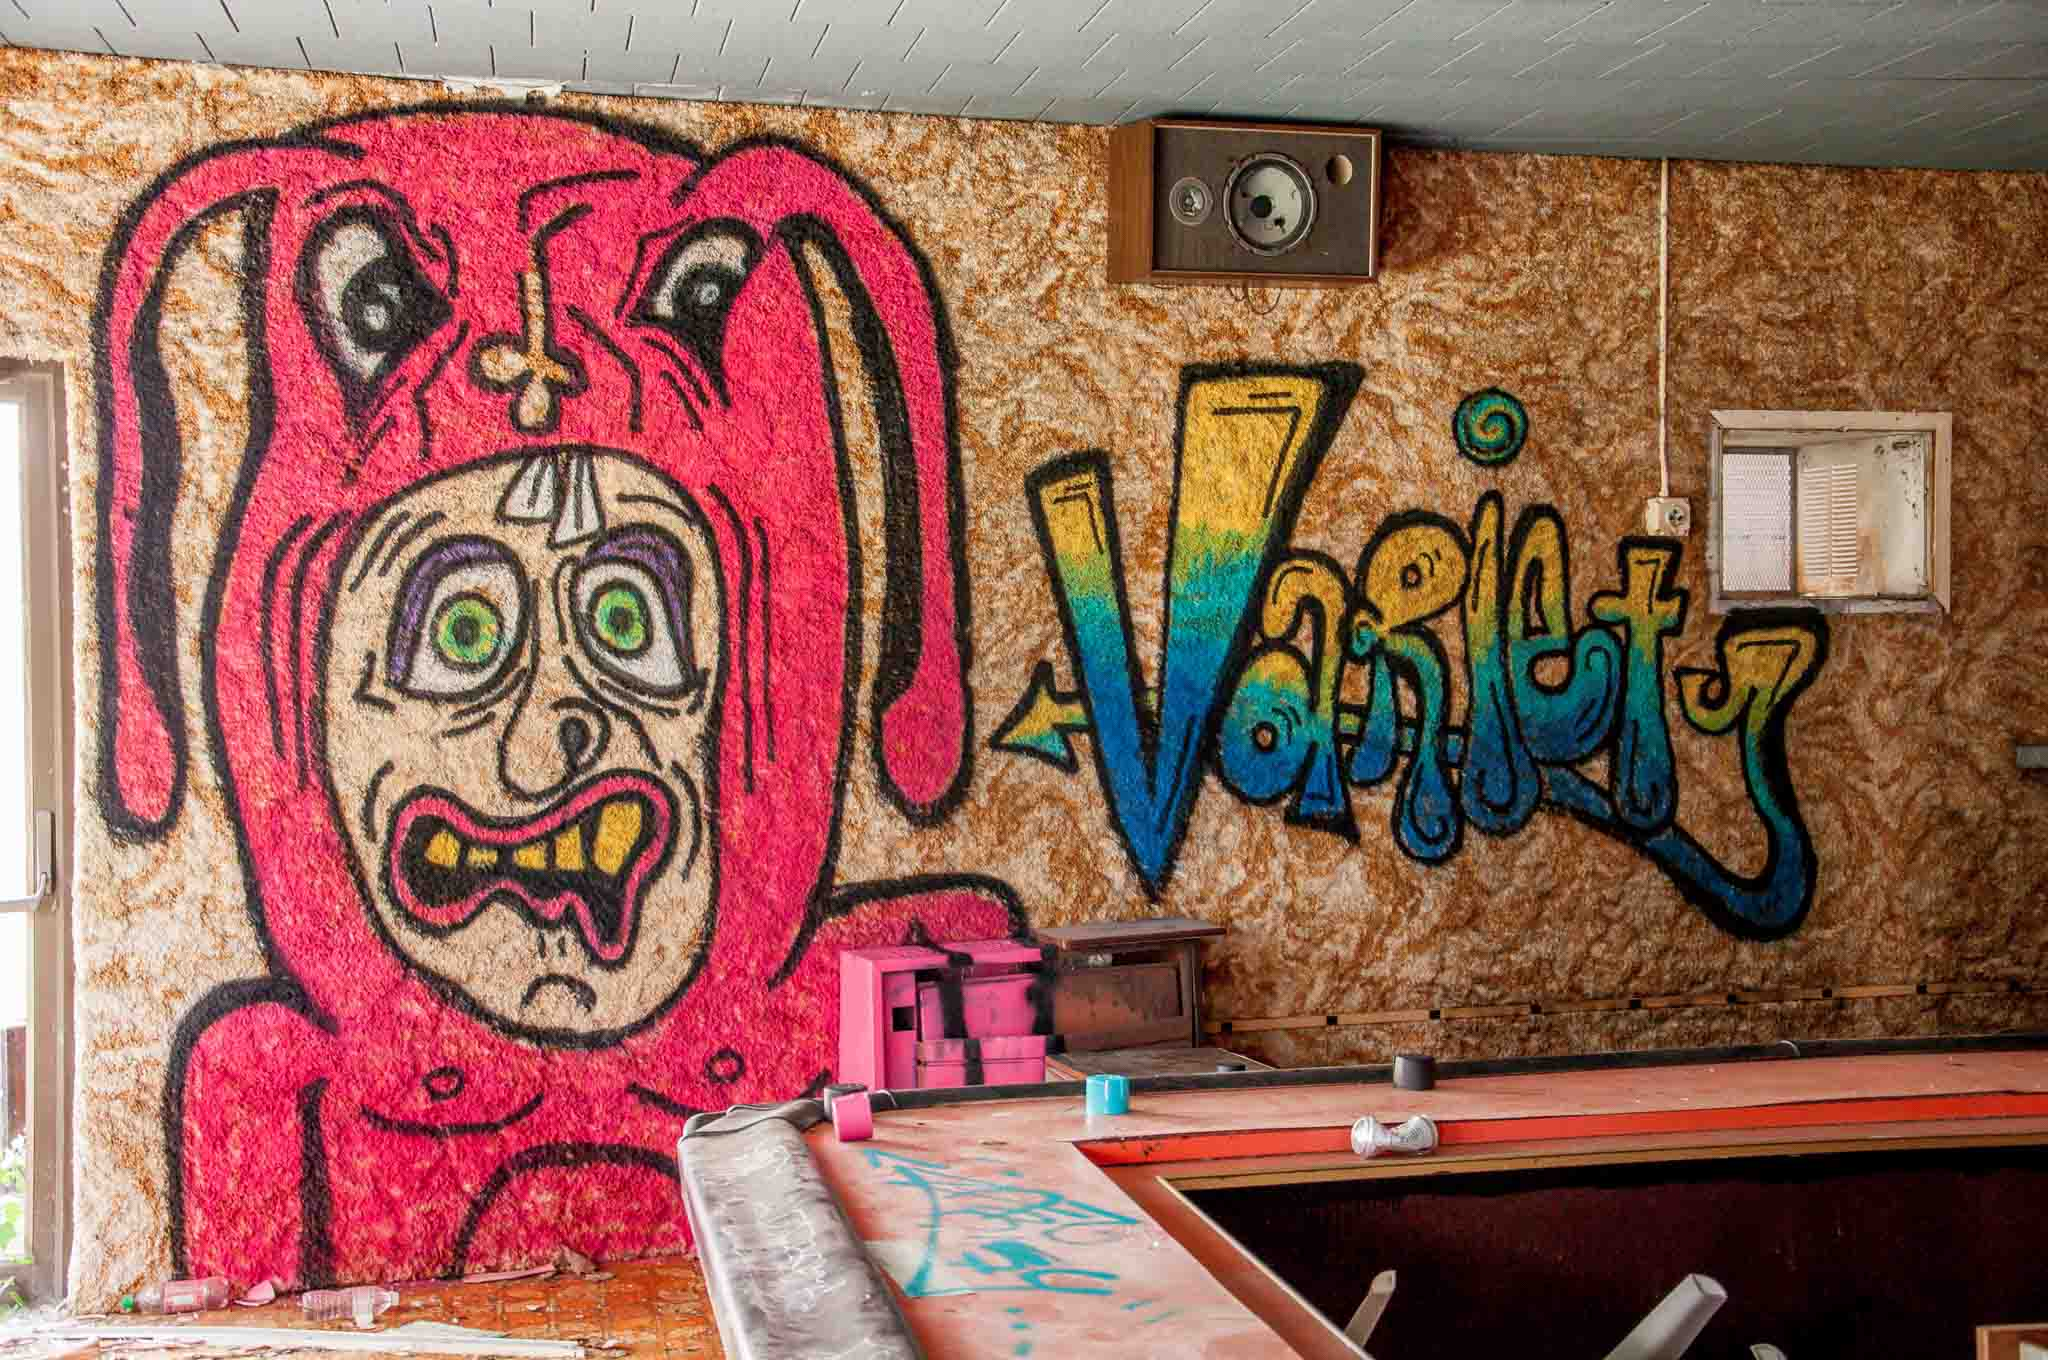 Graffiti at one of the abandoned Poconos resorts. This was once one of the Poconos honeymoon suites hotels.